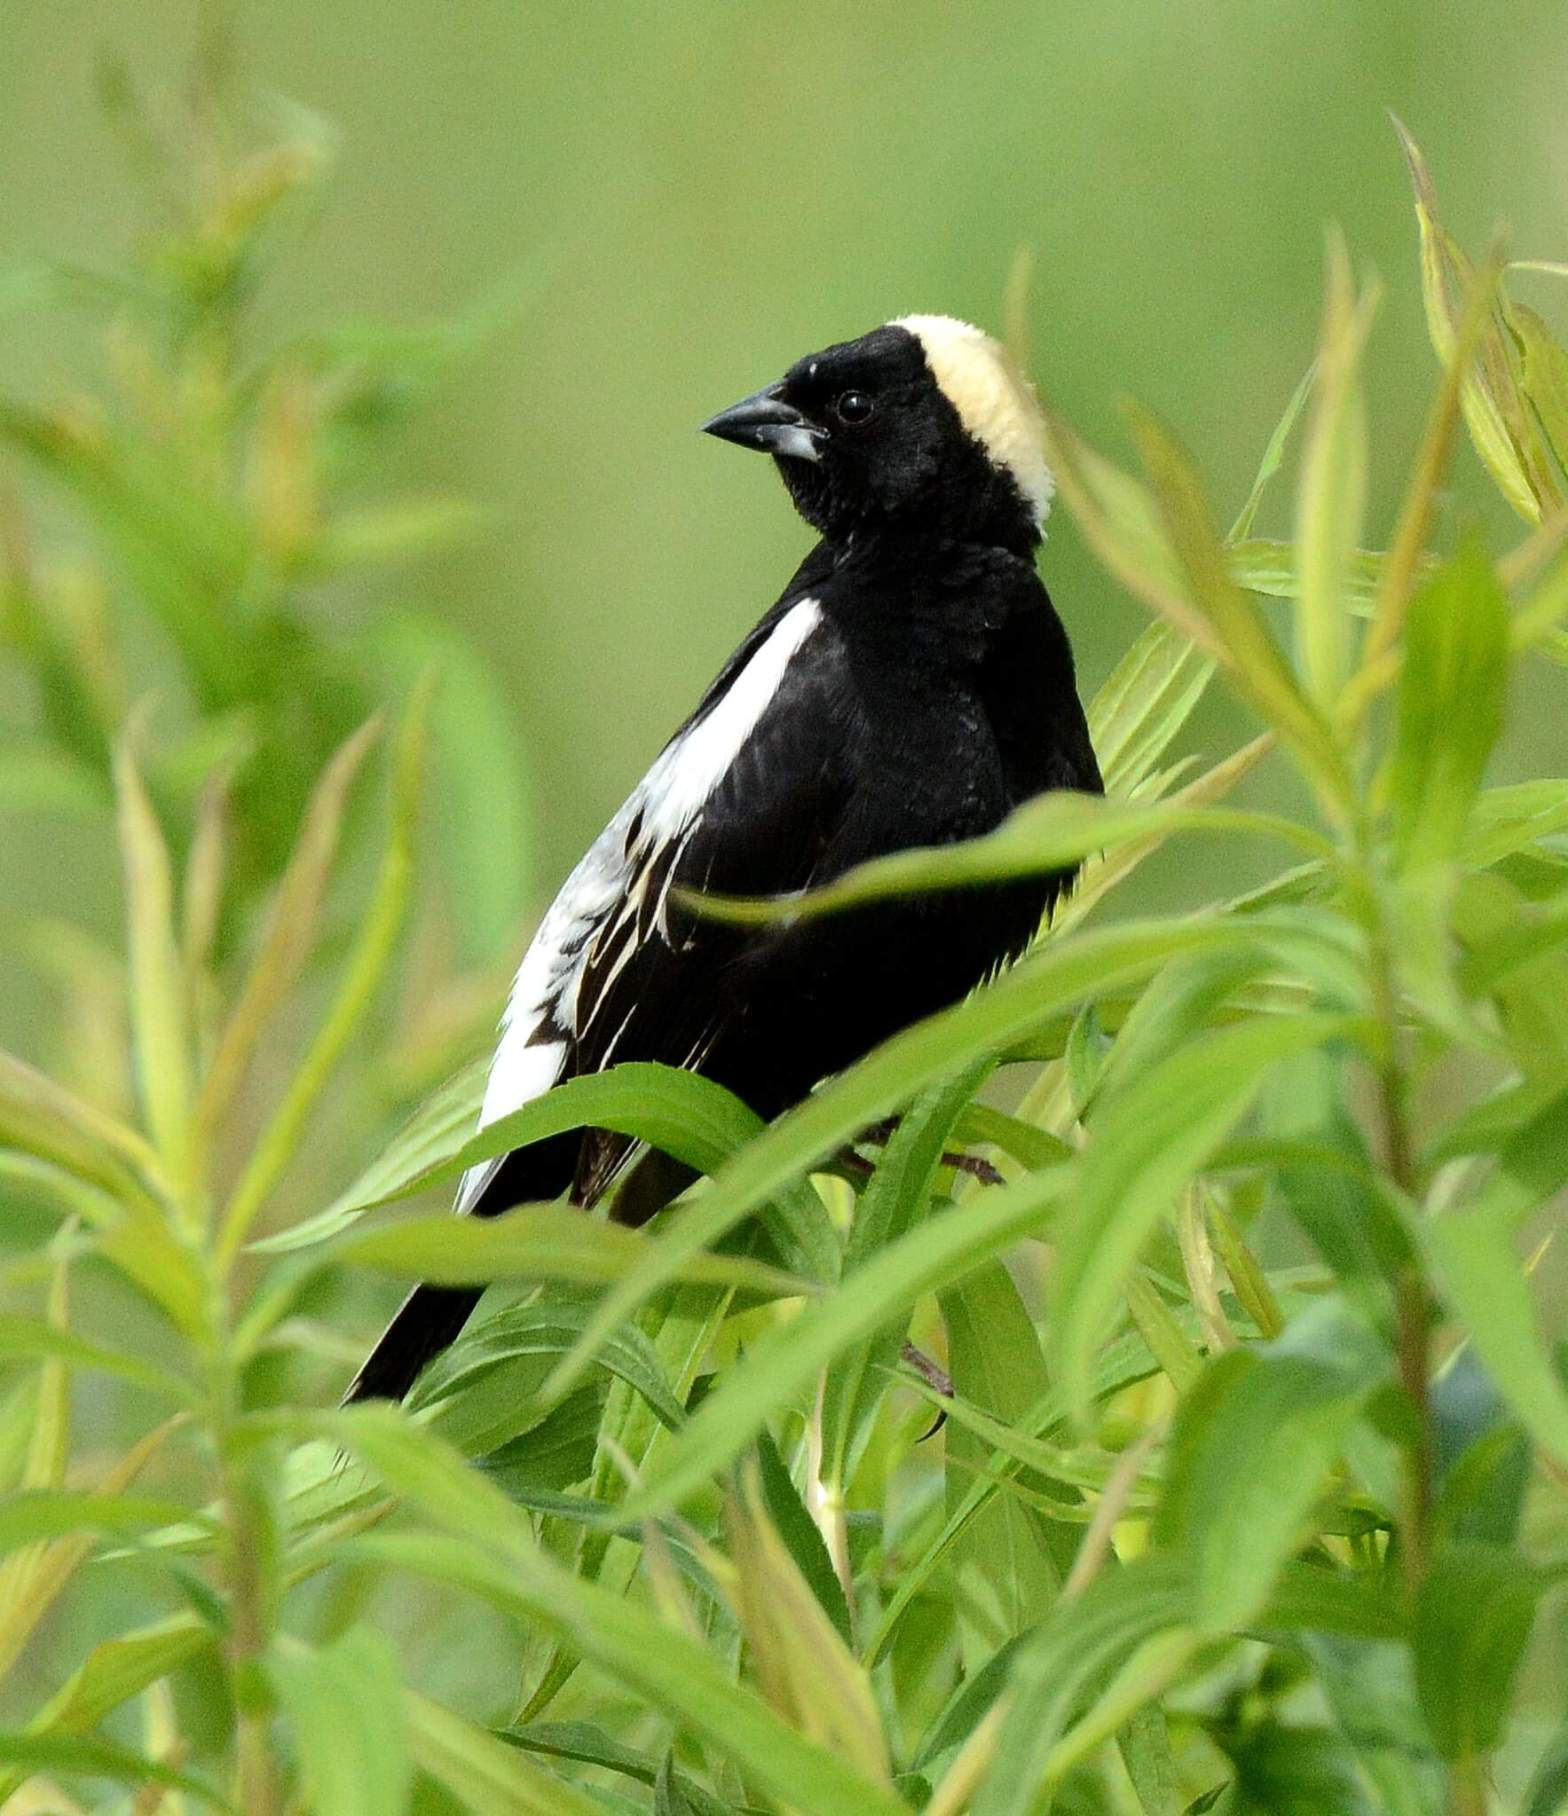 Bird in Foliage